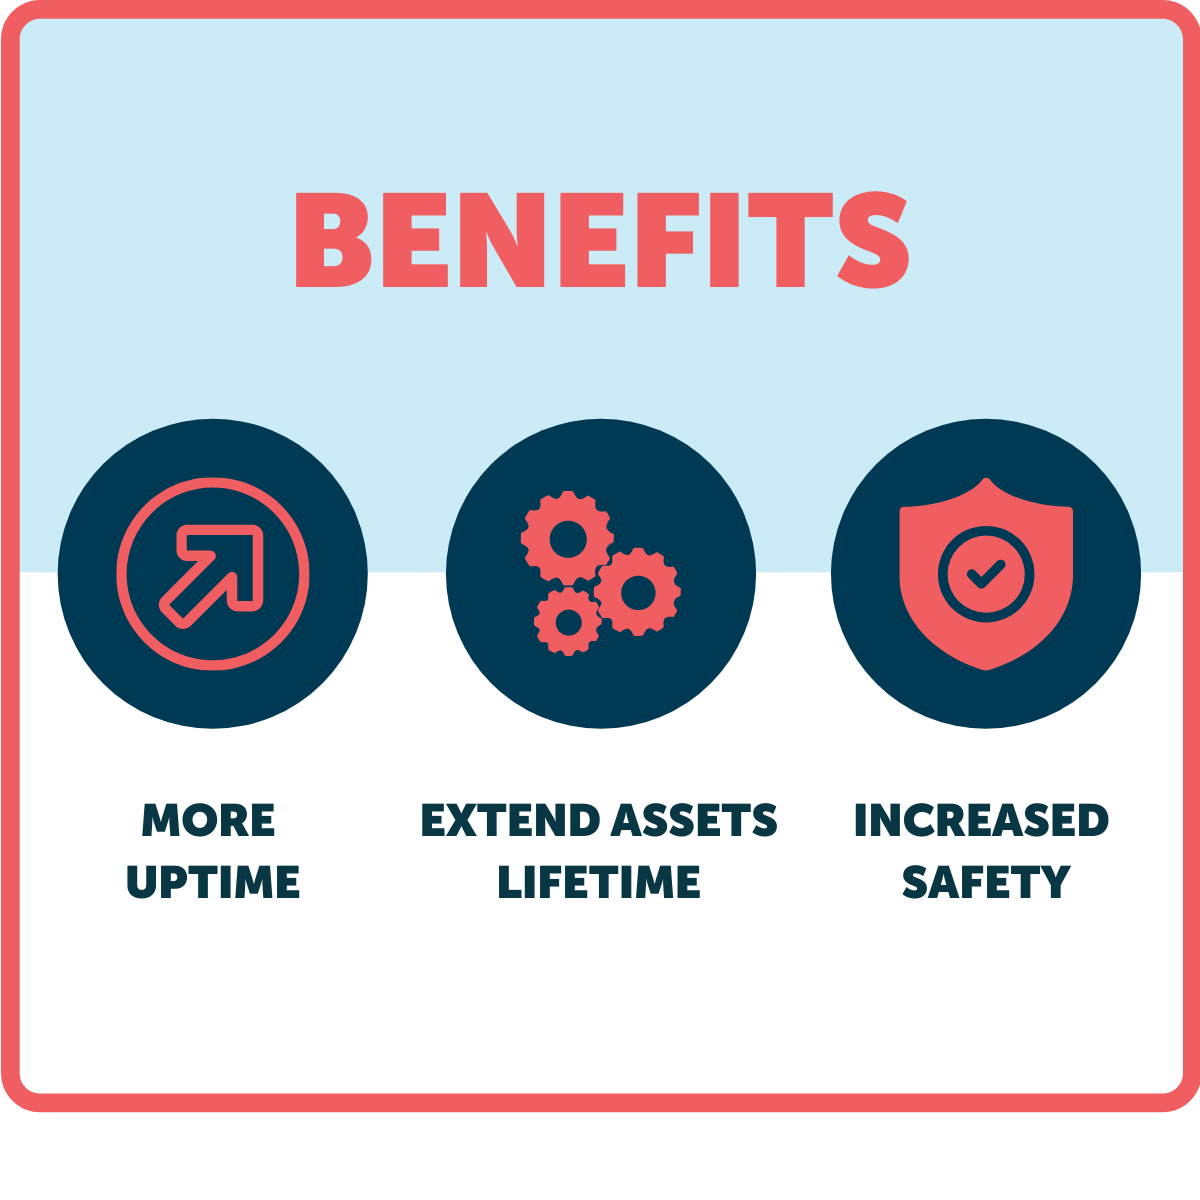 Benefits of Preventive Maintenance software